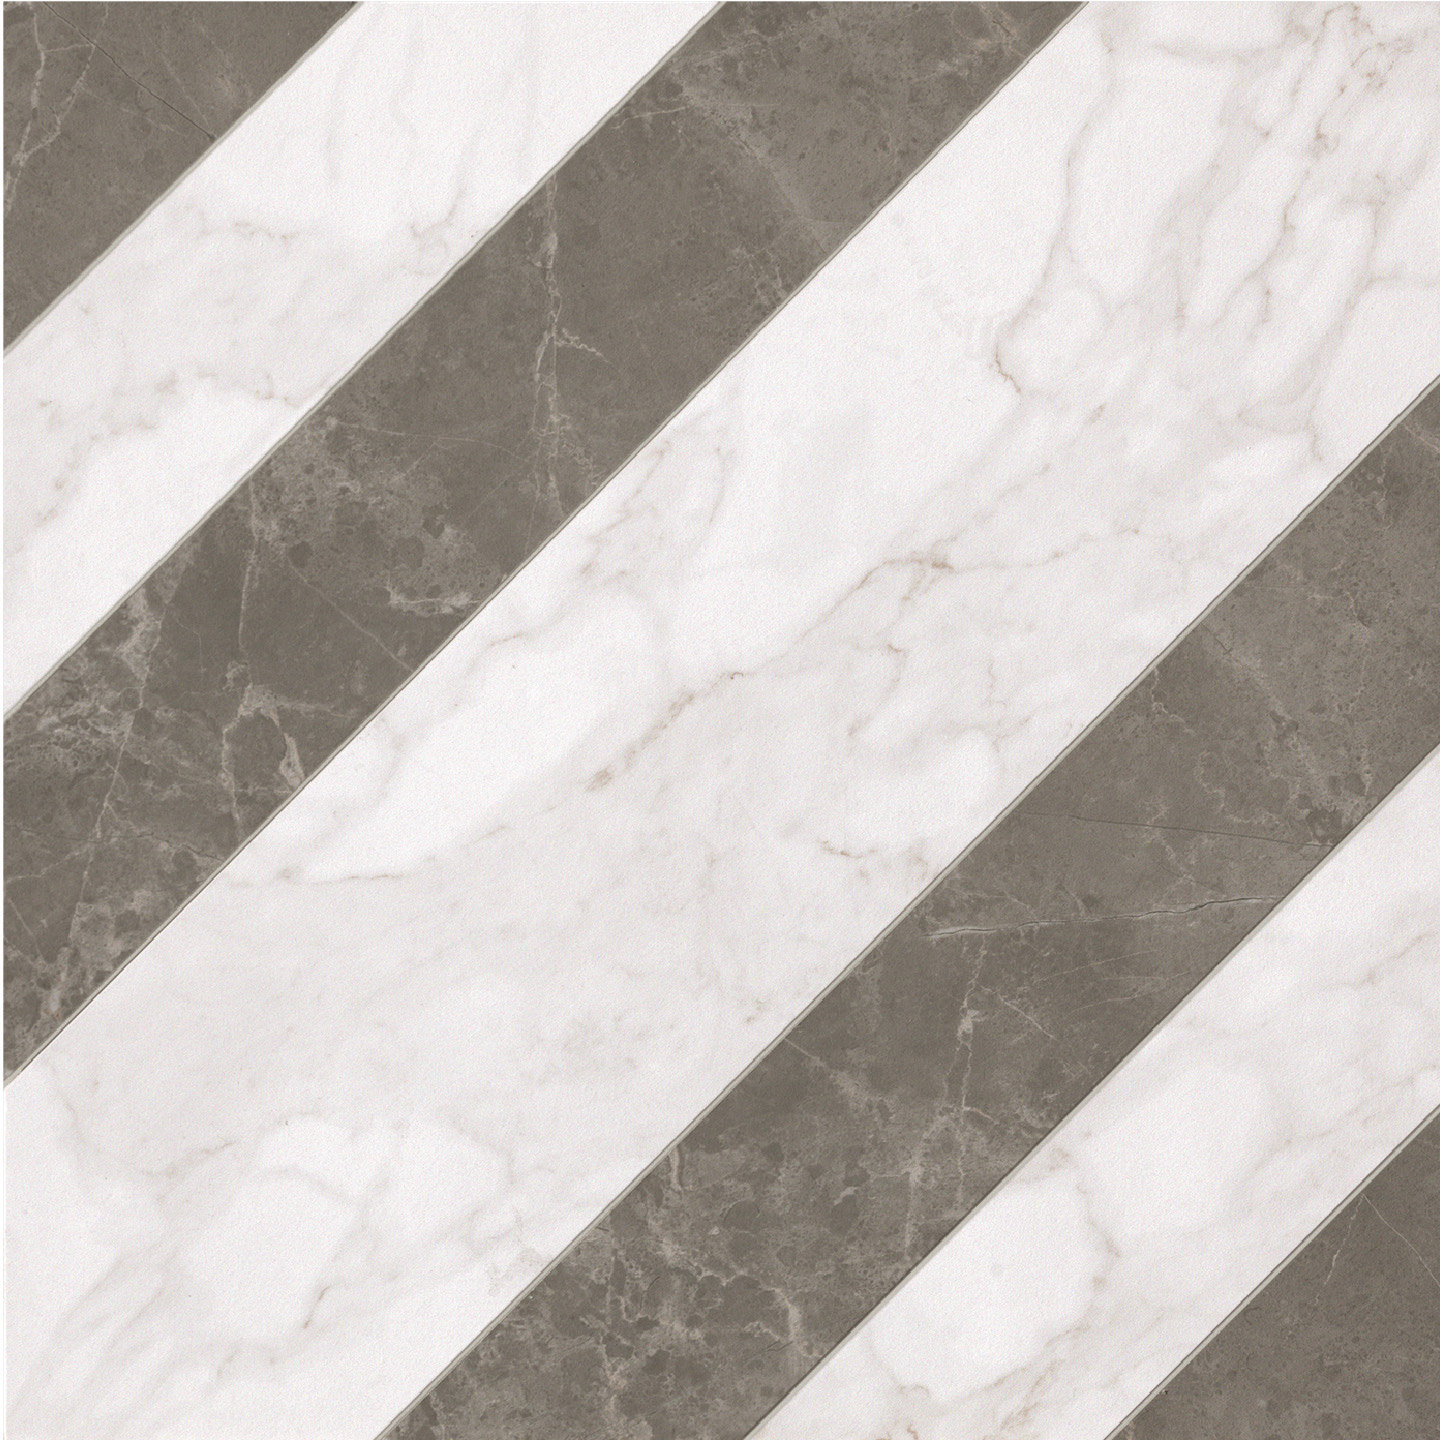 Fap Roma Righe Calacatta Imperiale 60x60 RT Matt